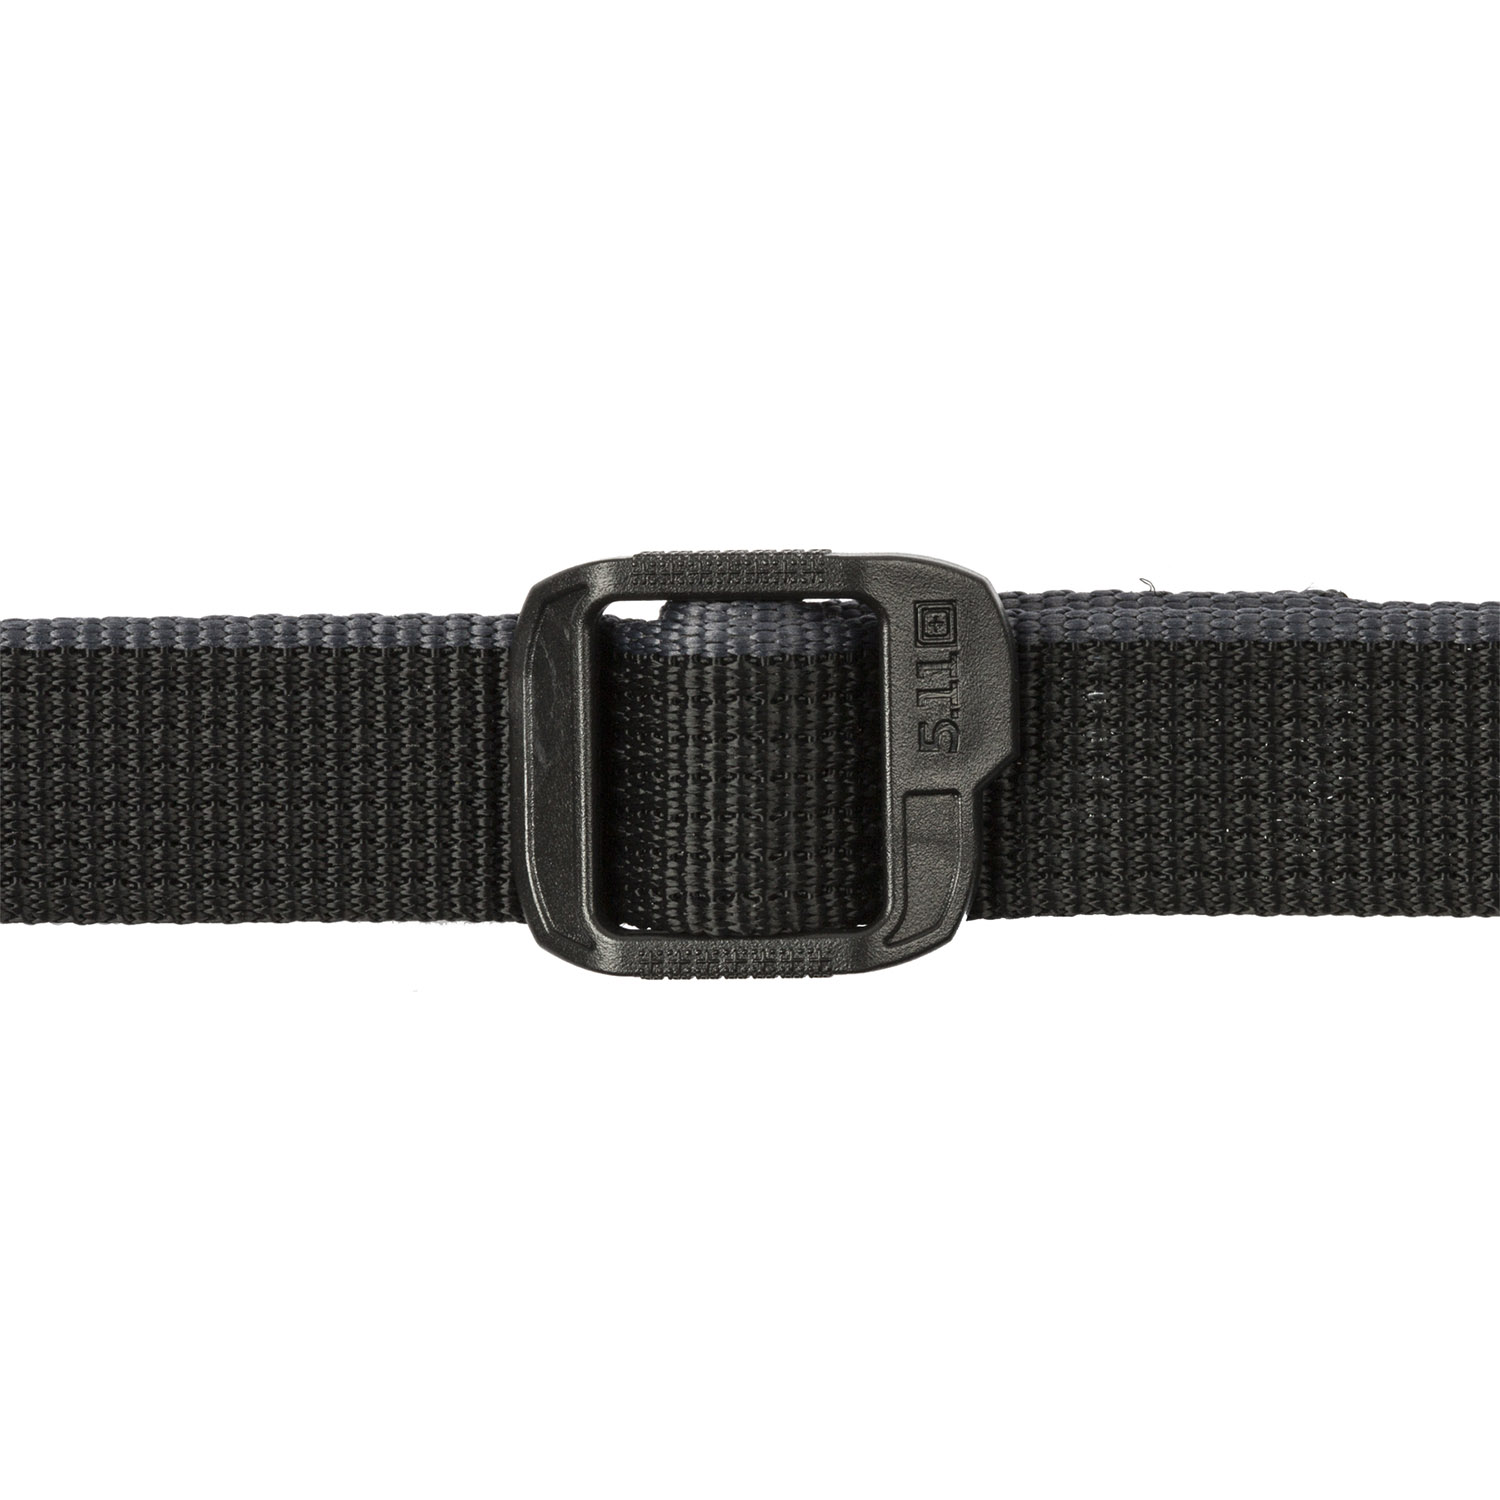 "5.11 Tactical Kella Belt - 1.25"" Wide"